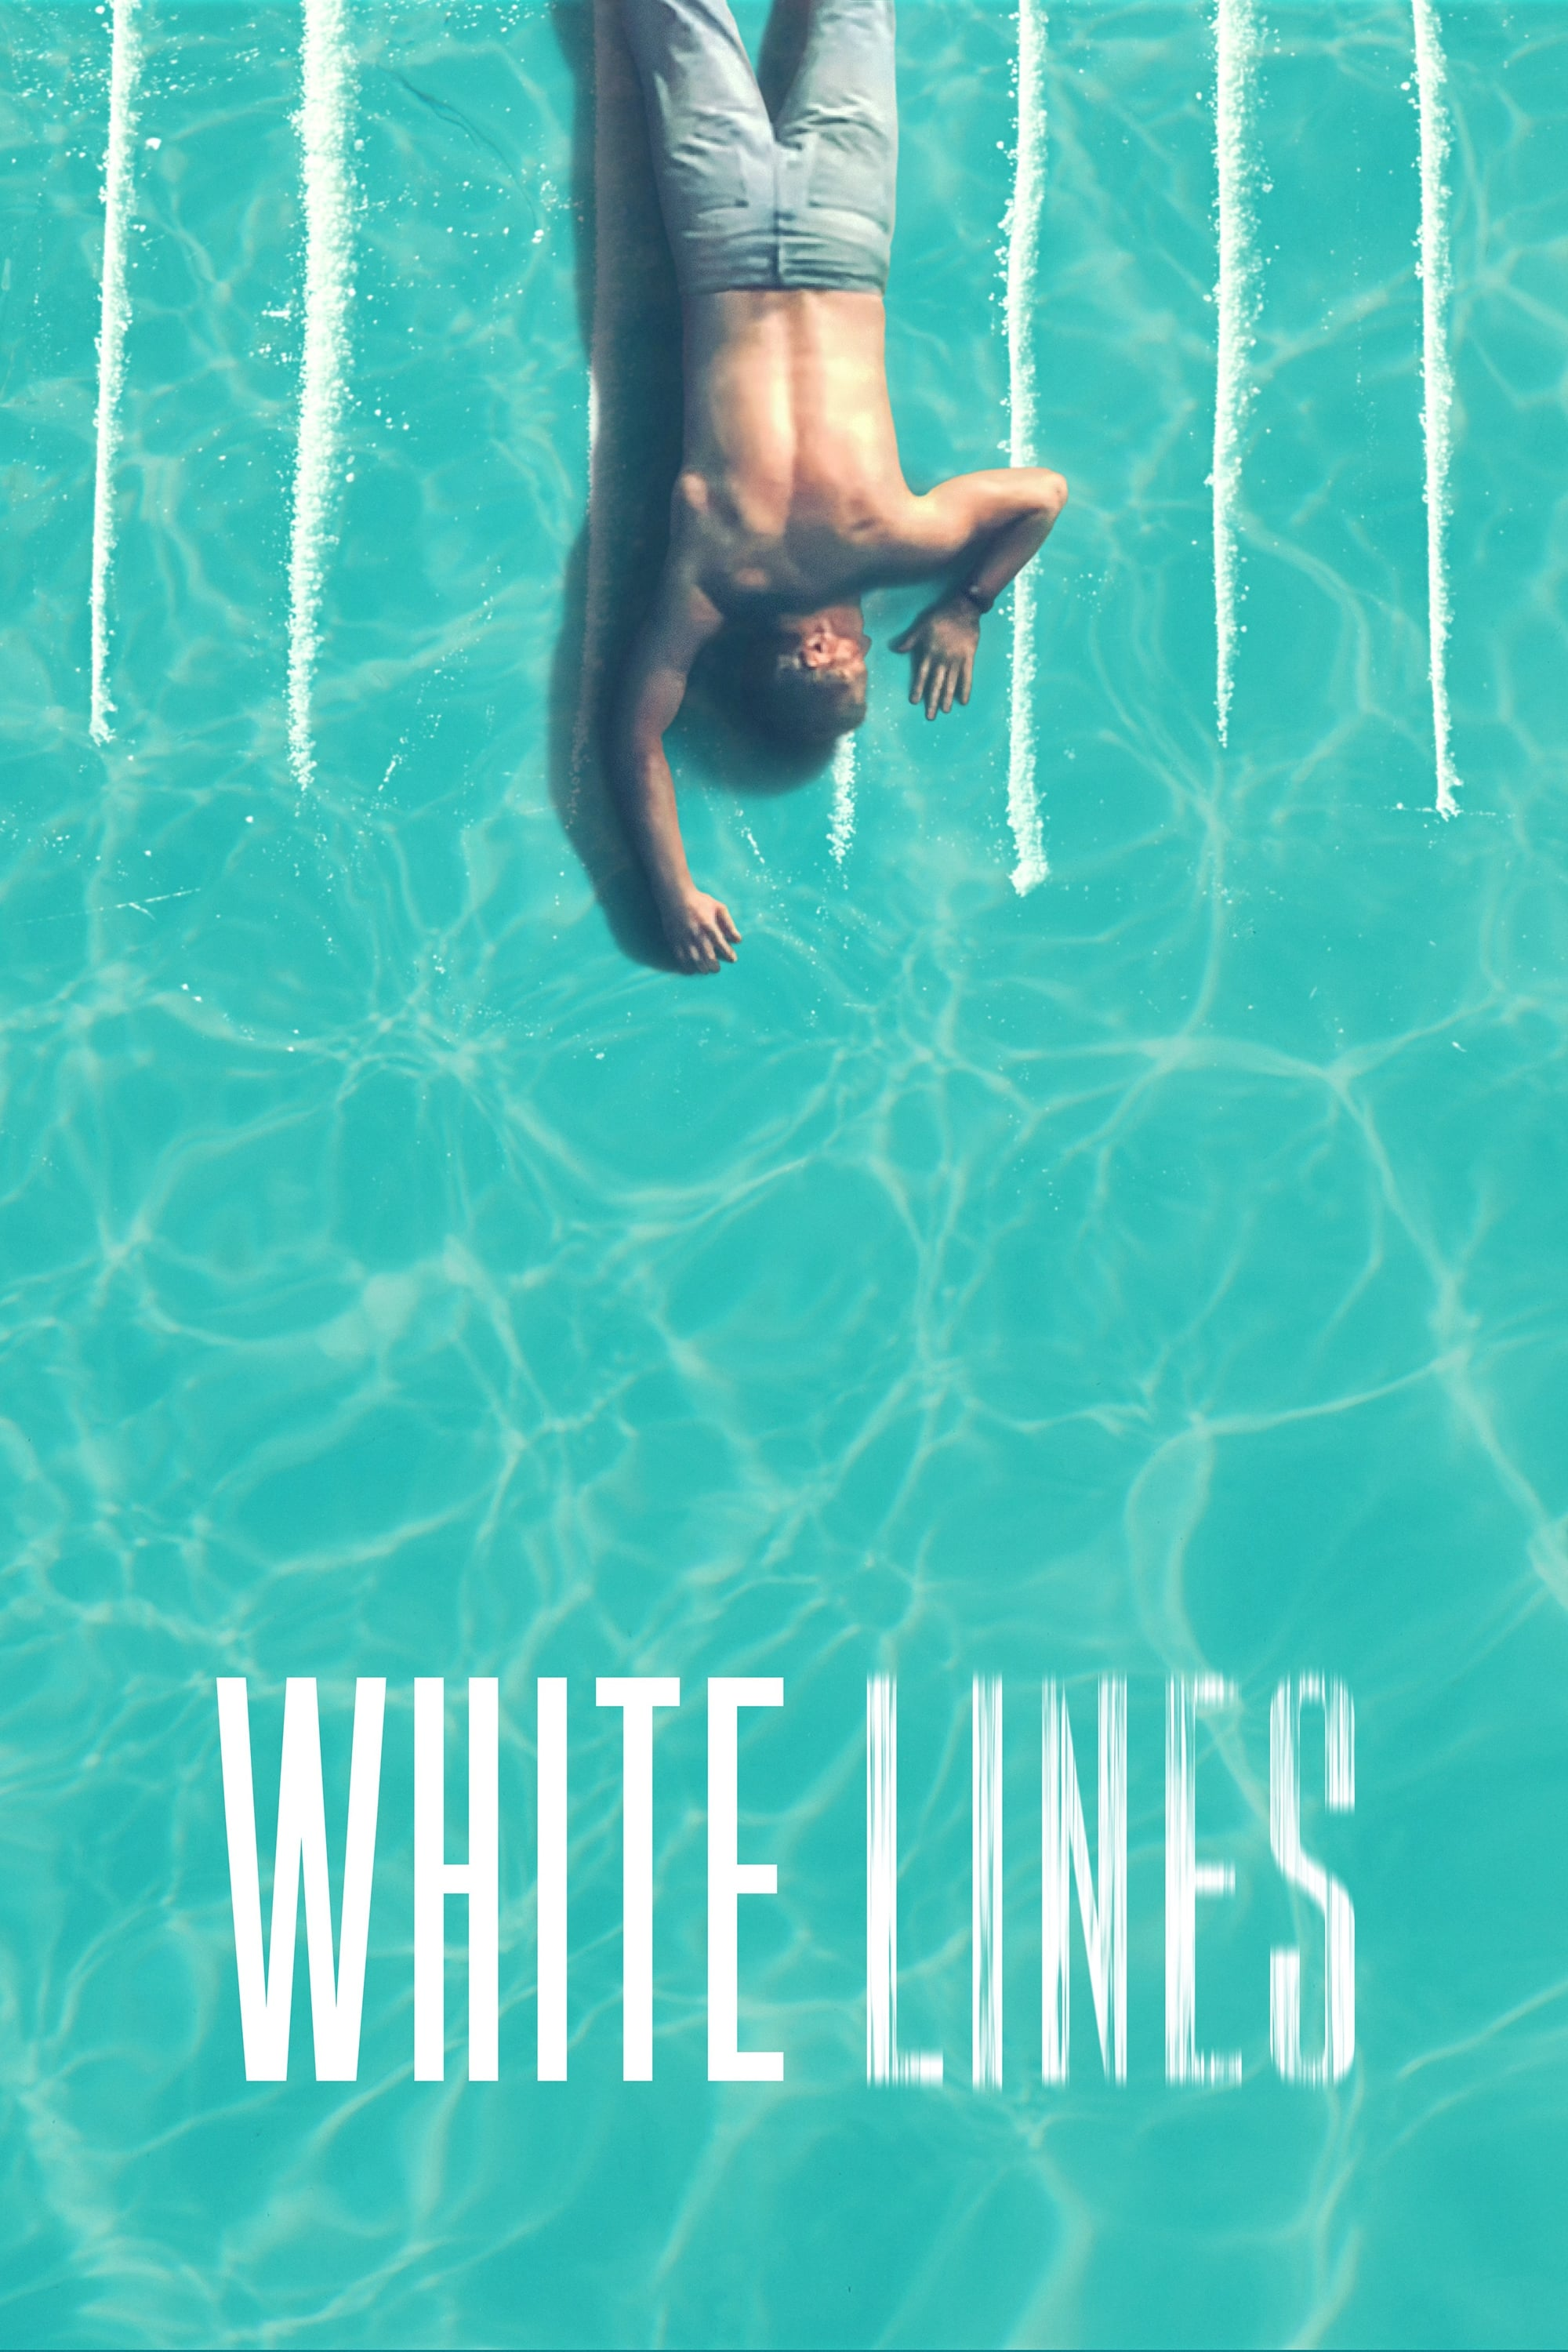 White Lines' />